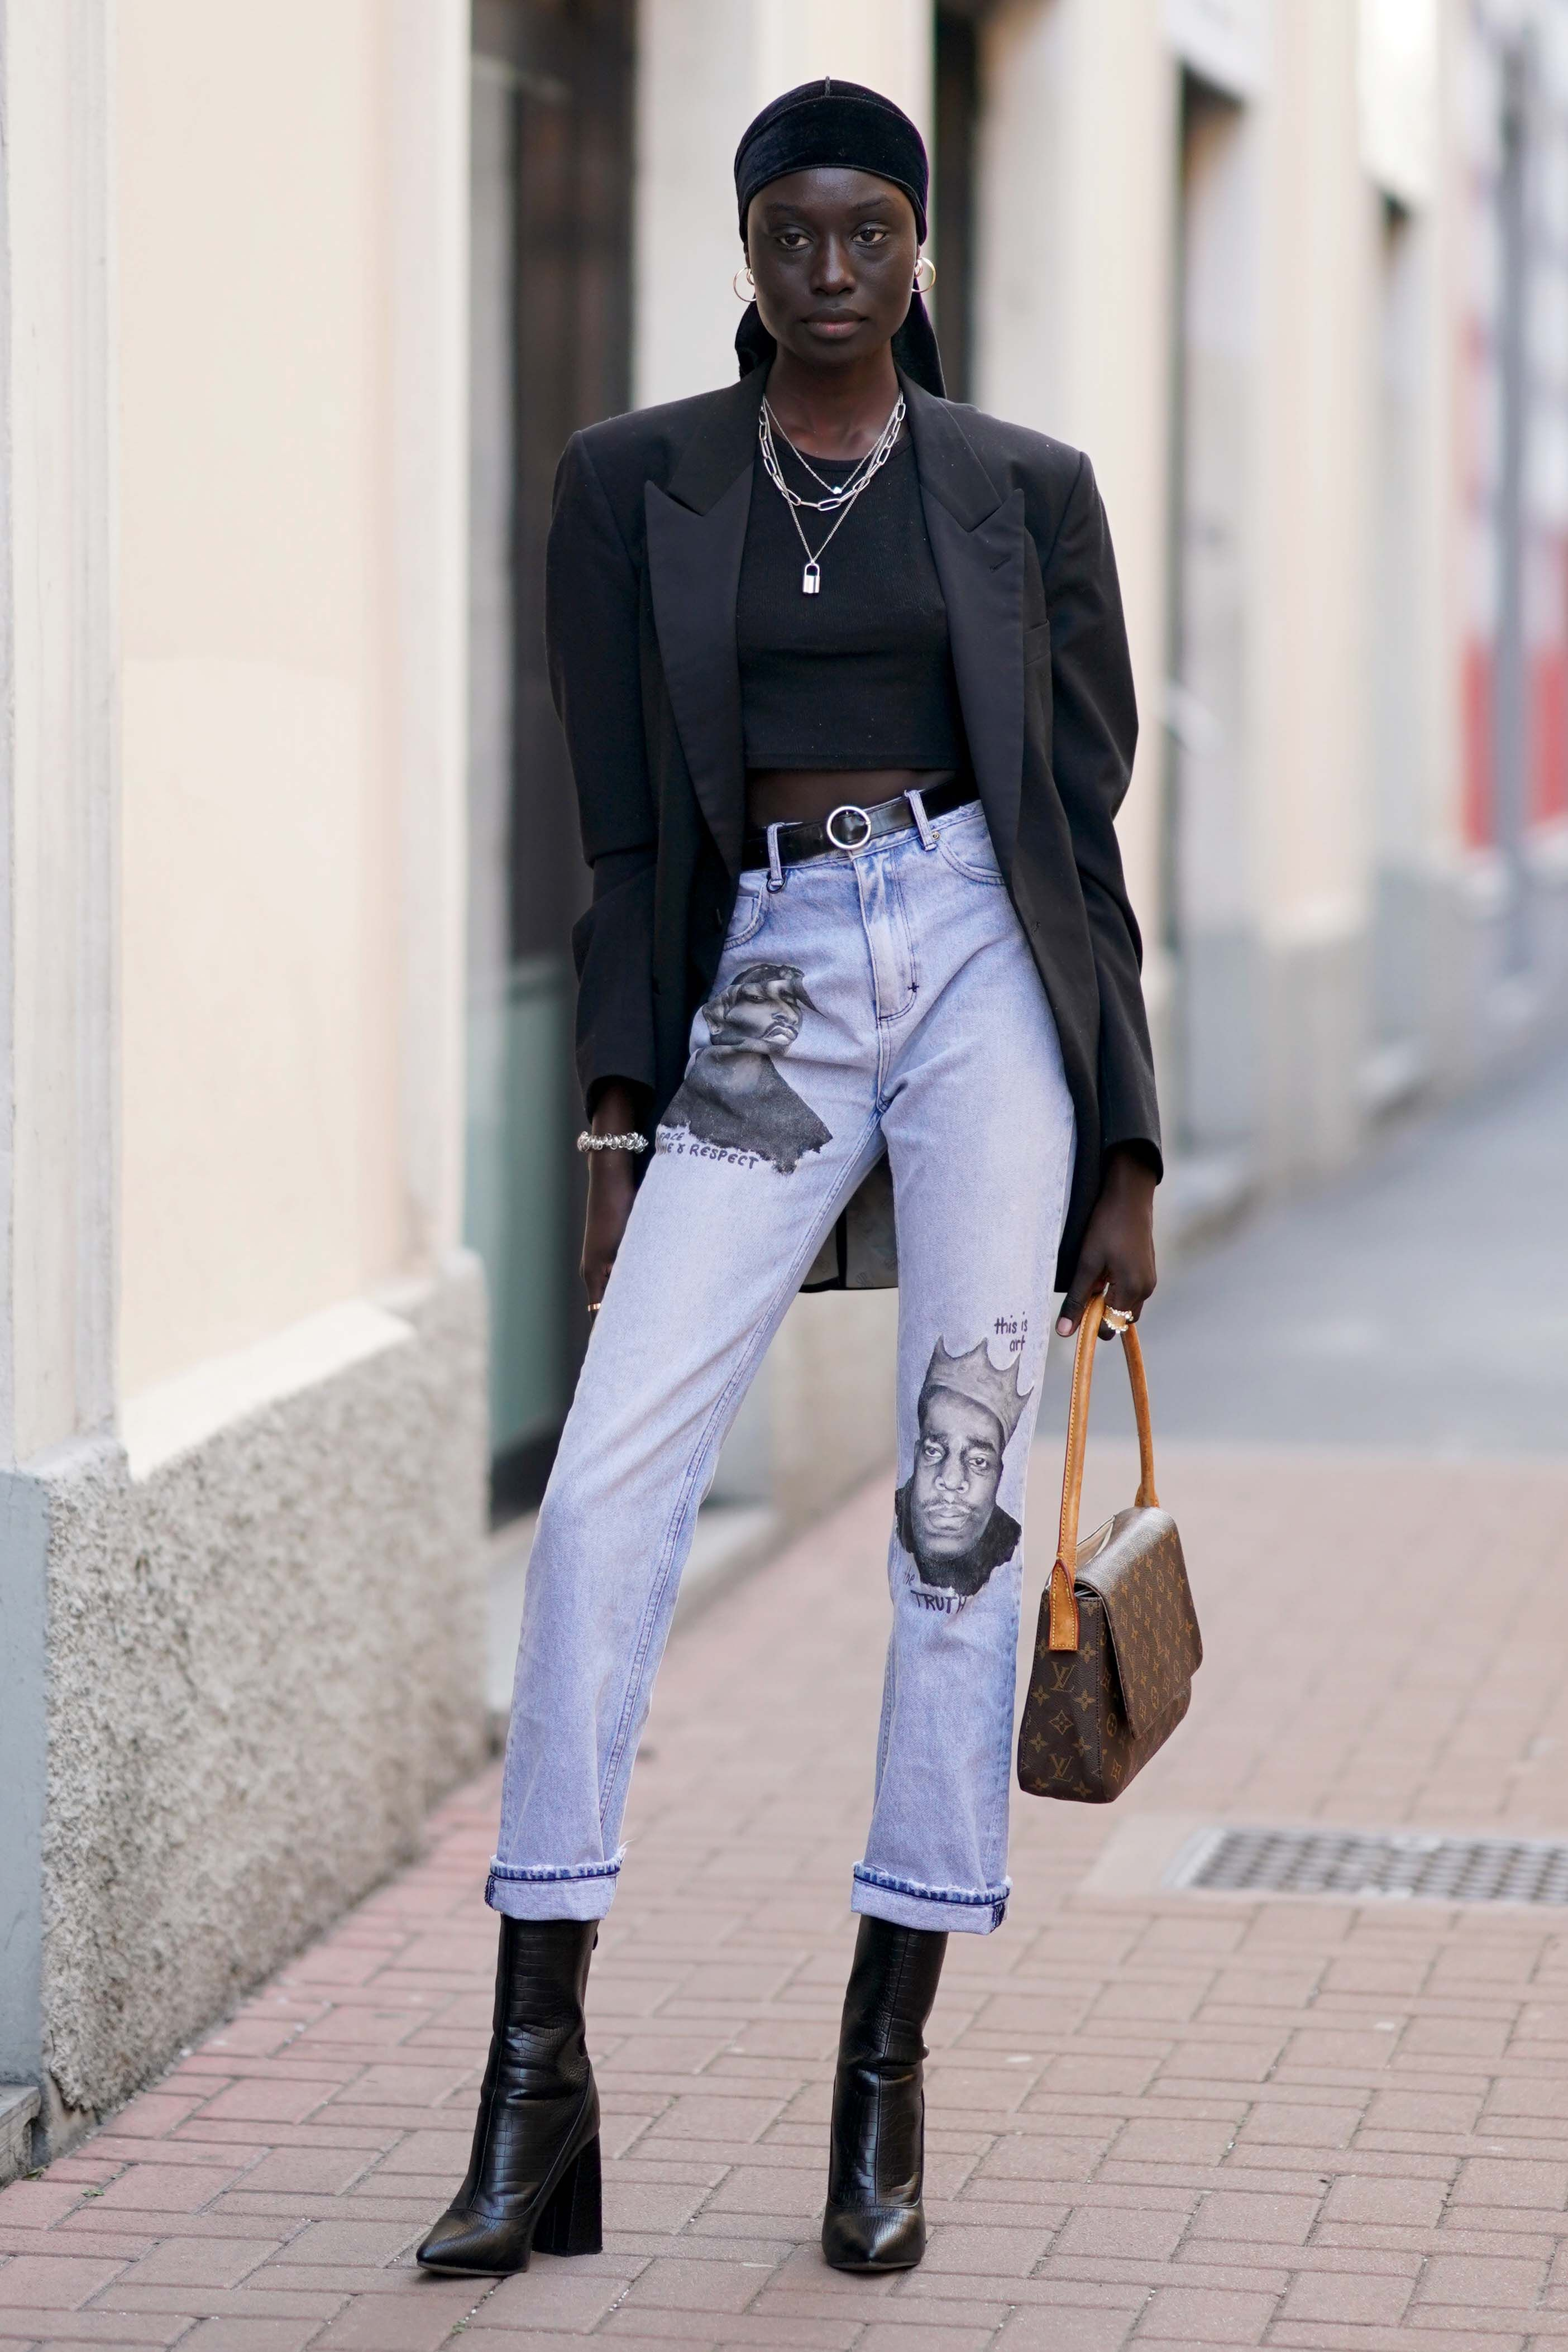 Jeans for women: the best women's jeans and non skinny denim